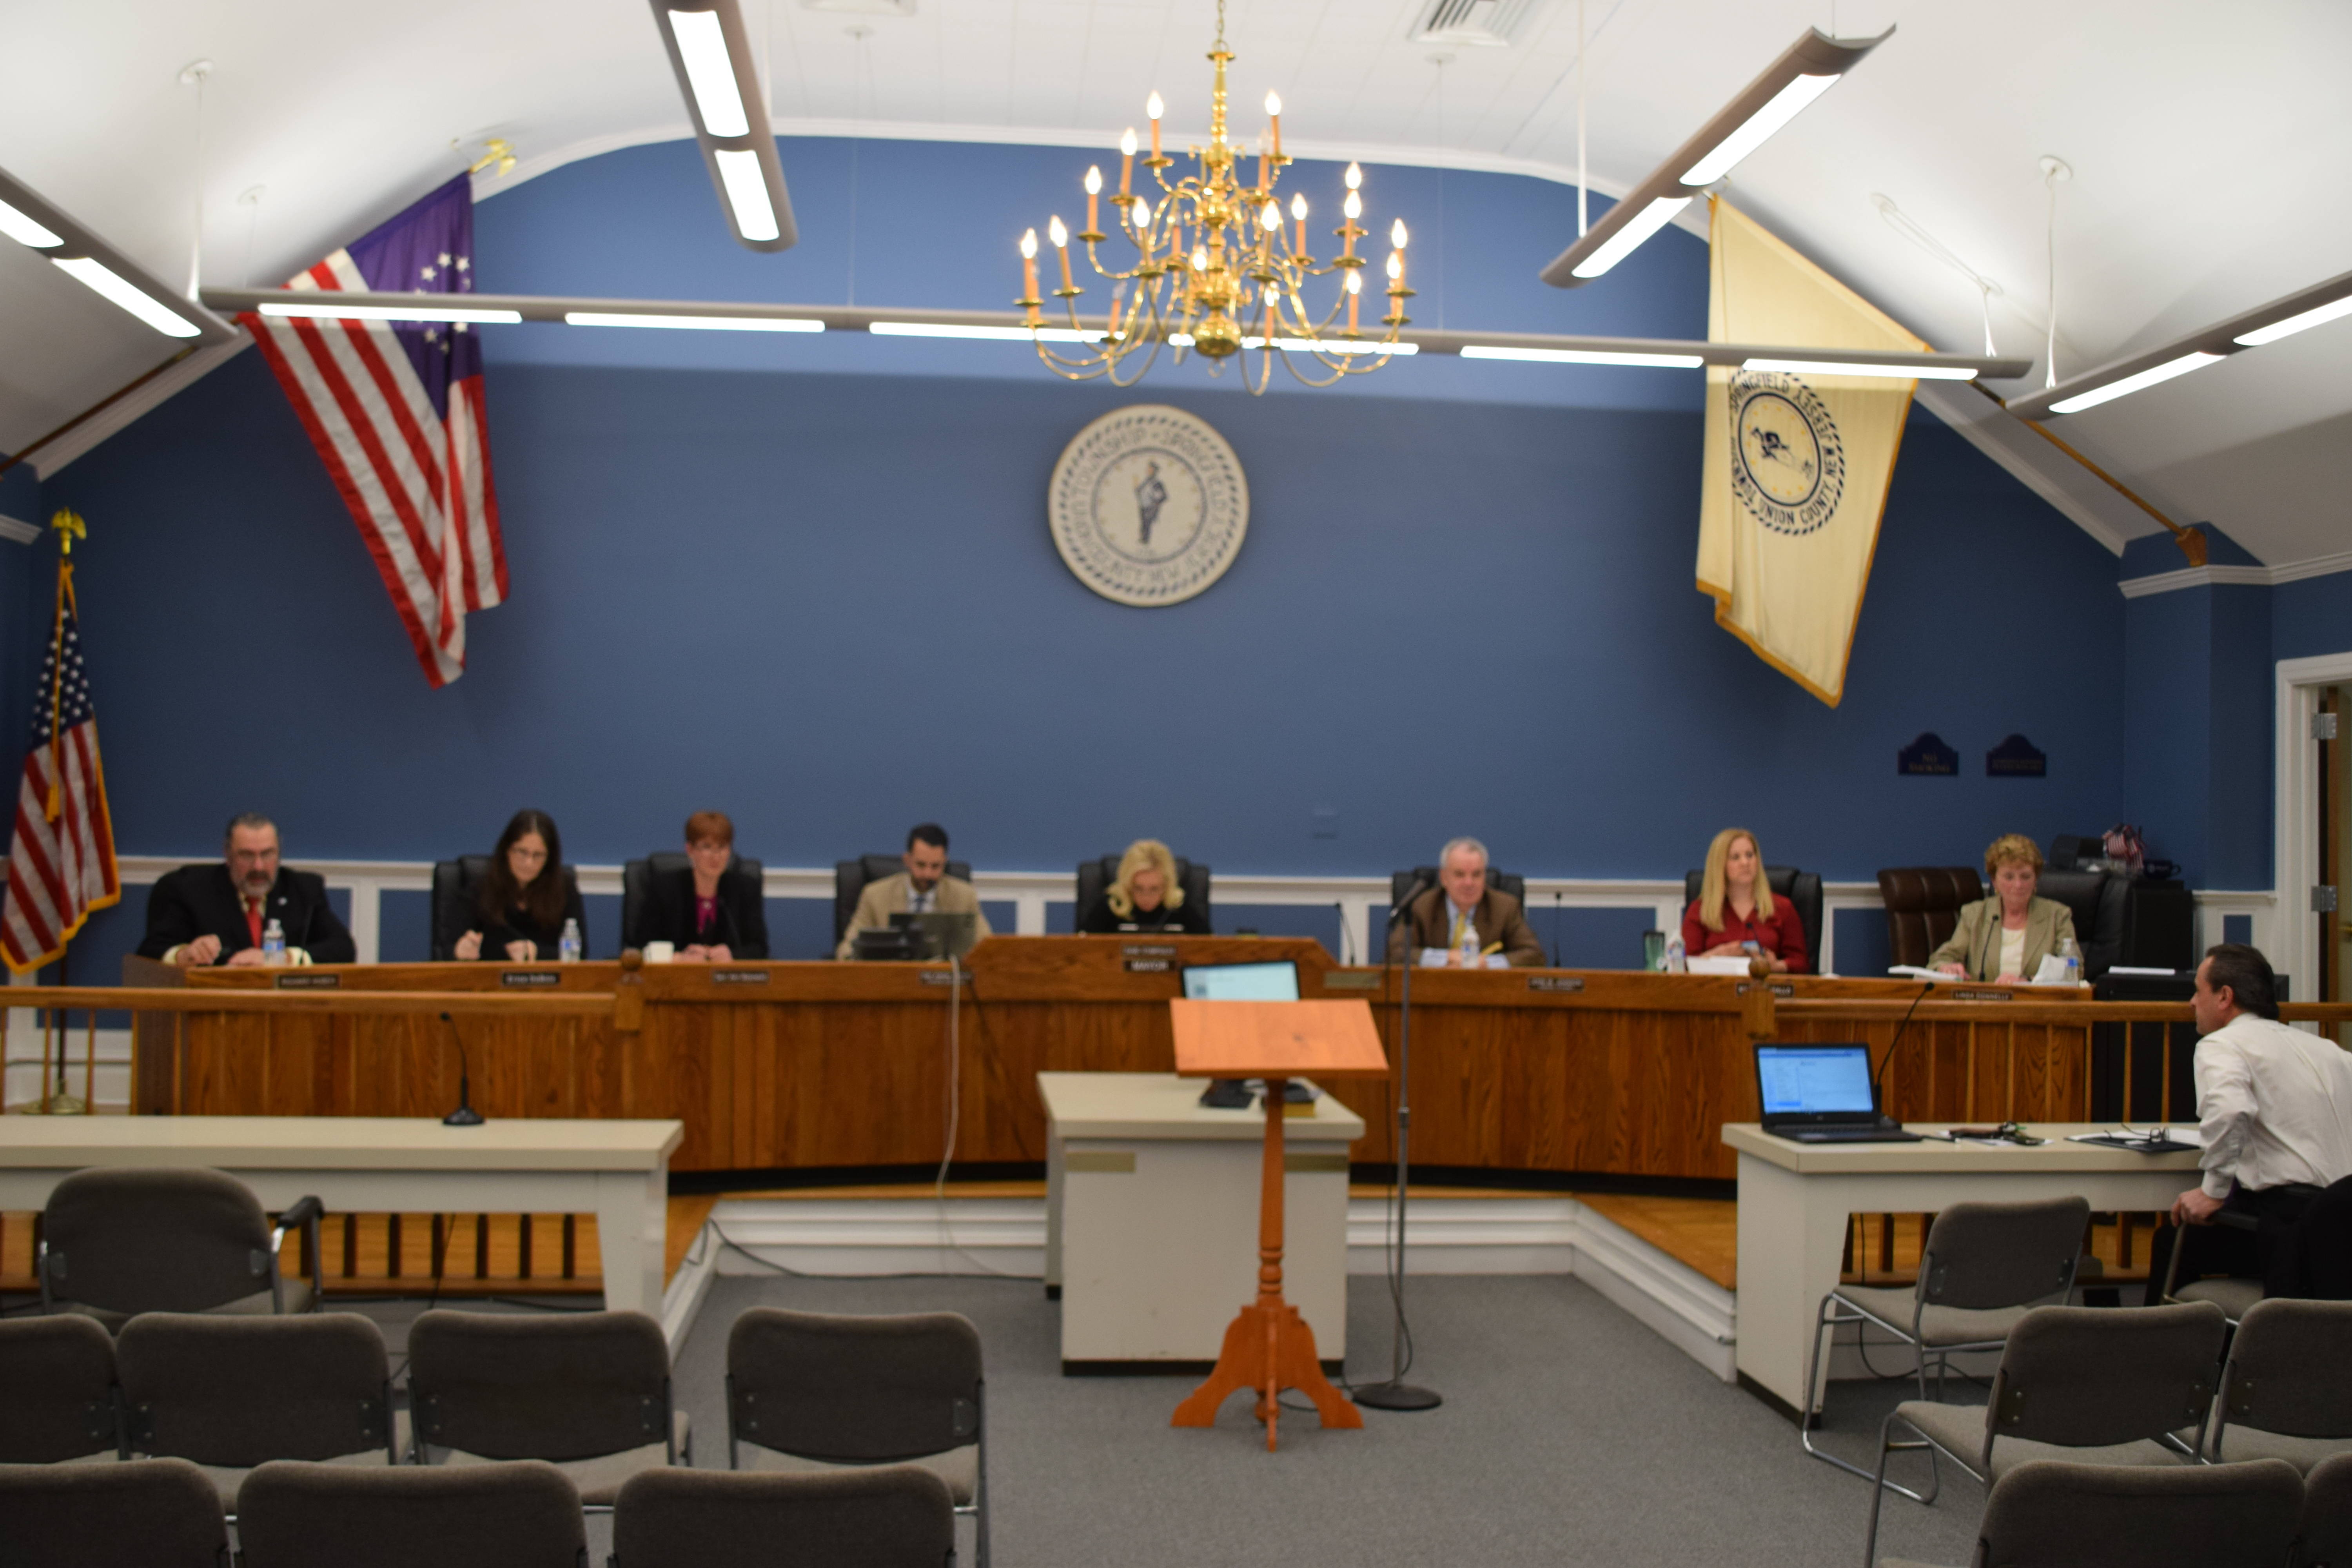 7a669be47f72ae9553bd_Township_Committee_12417_045.JPG